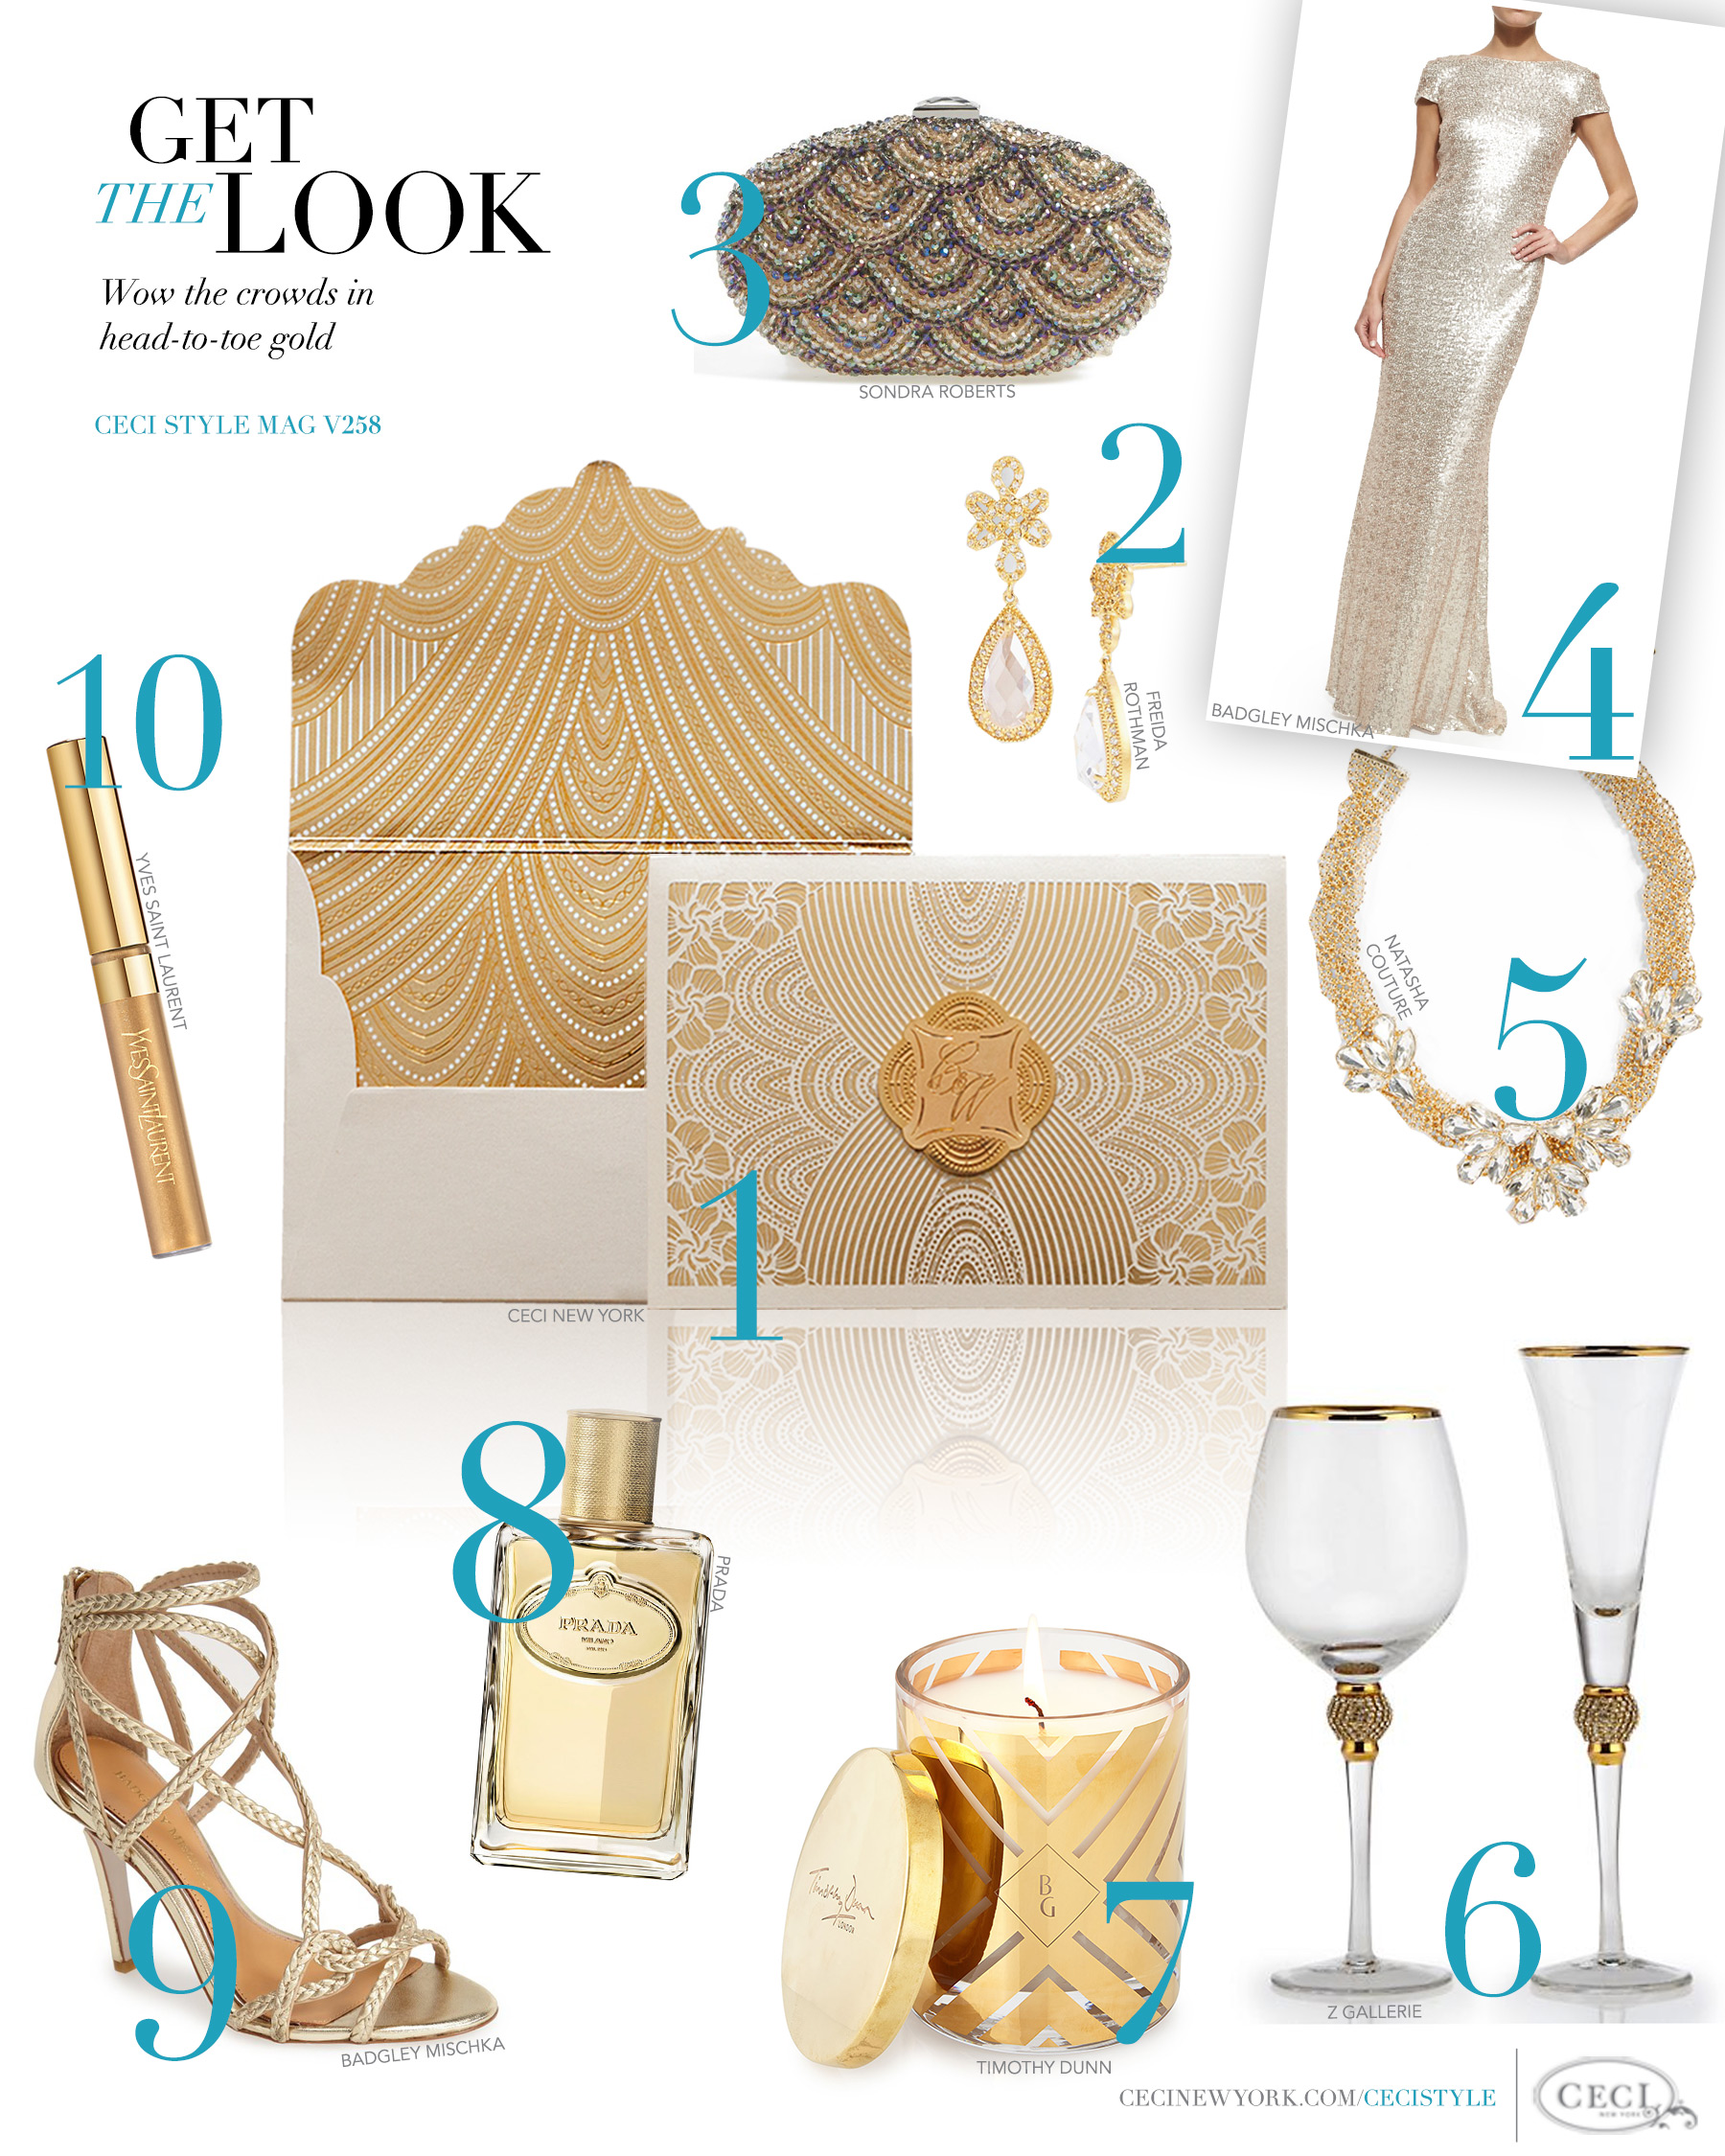 CeciStyle Magazine v258: Get The Look - Gilded Glamour - Wow the crowds in head-to-toe gold. - Luxury Wedding Invitations by Ceci New York - barneys new york, victoria stemware, badgley mischka, sondra roberts, yves saint laurent, freida rothman, prada, ceci new york, timothy dunn, luxury wedding invitations, custom wedding invitations, couture